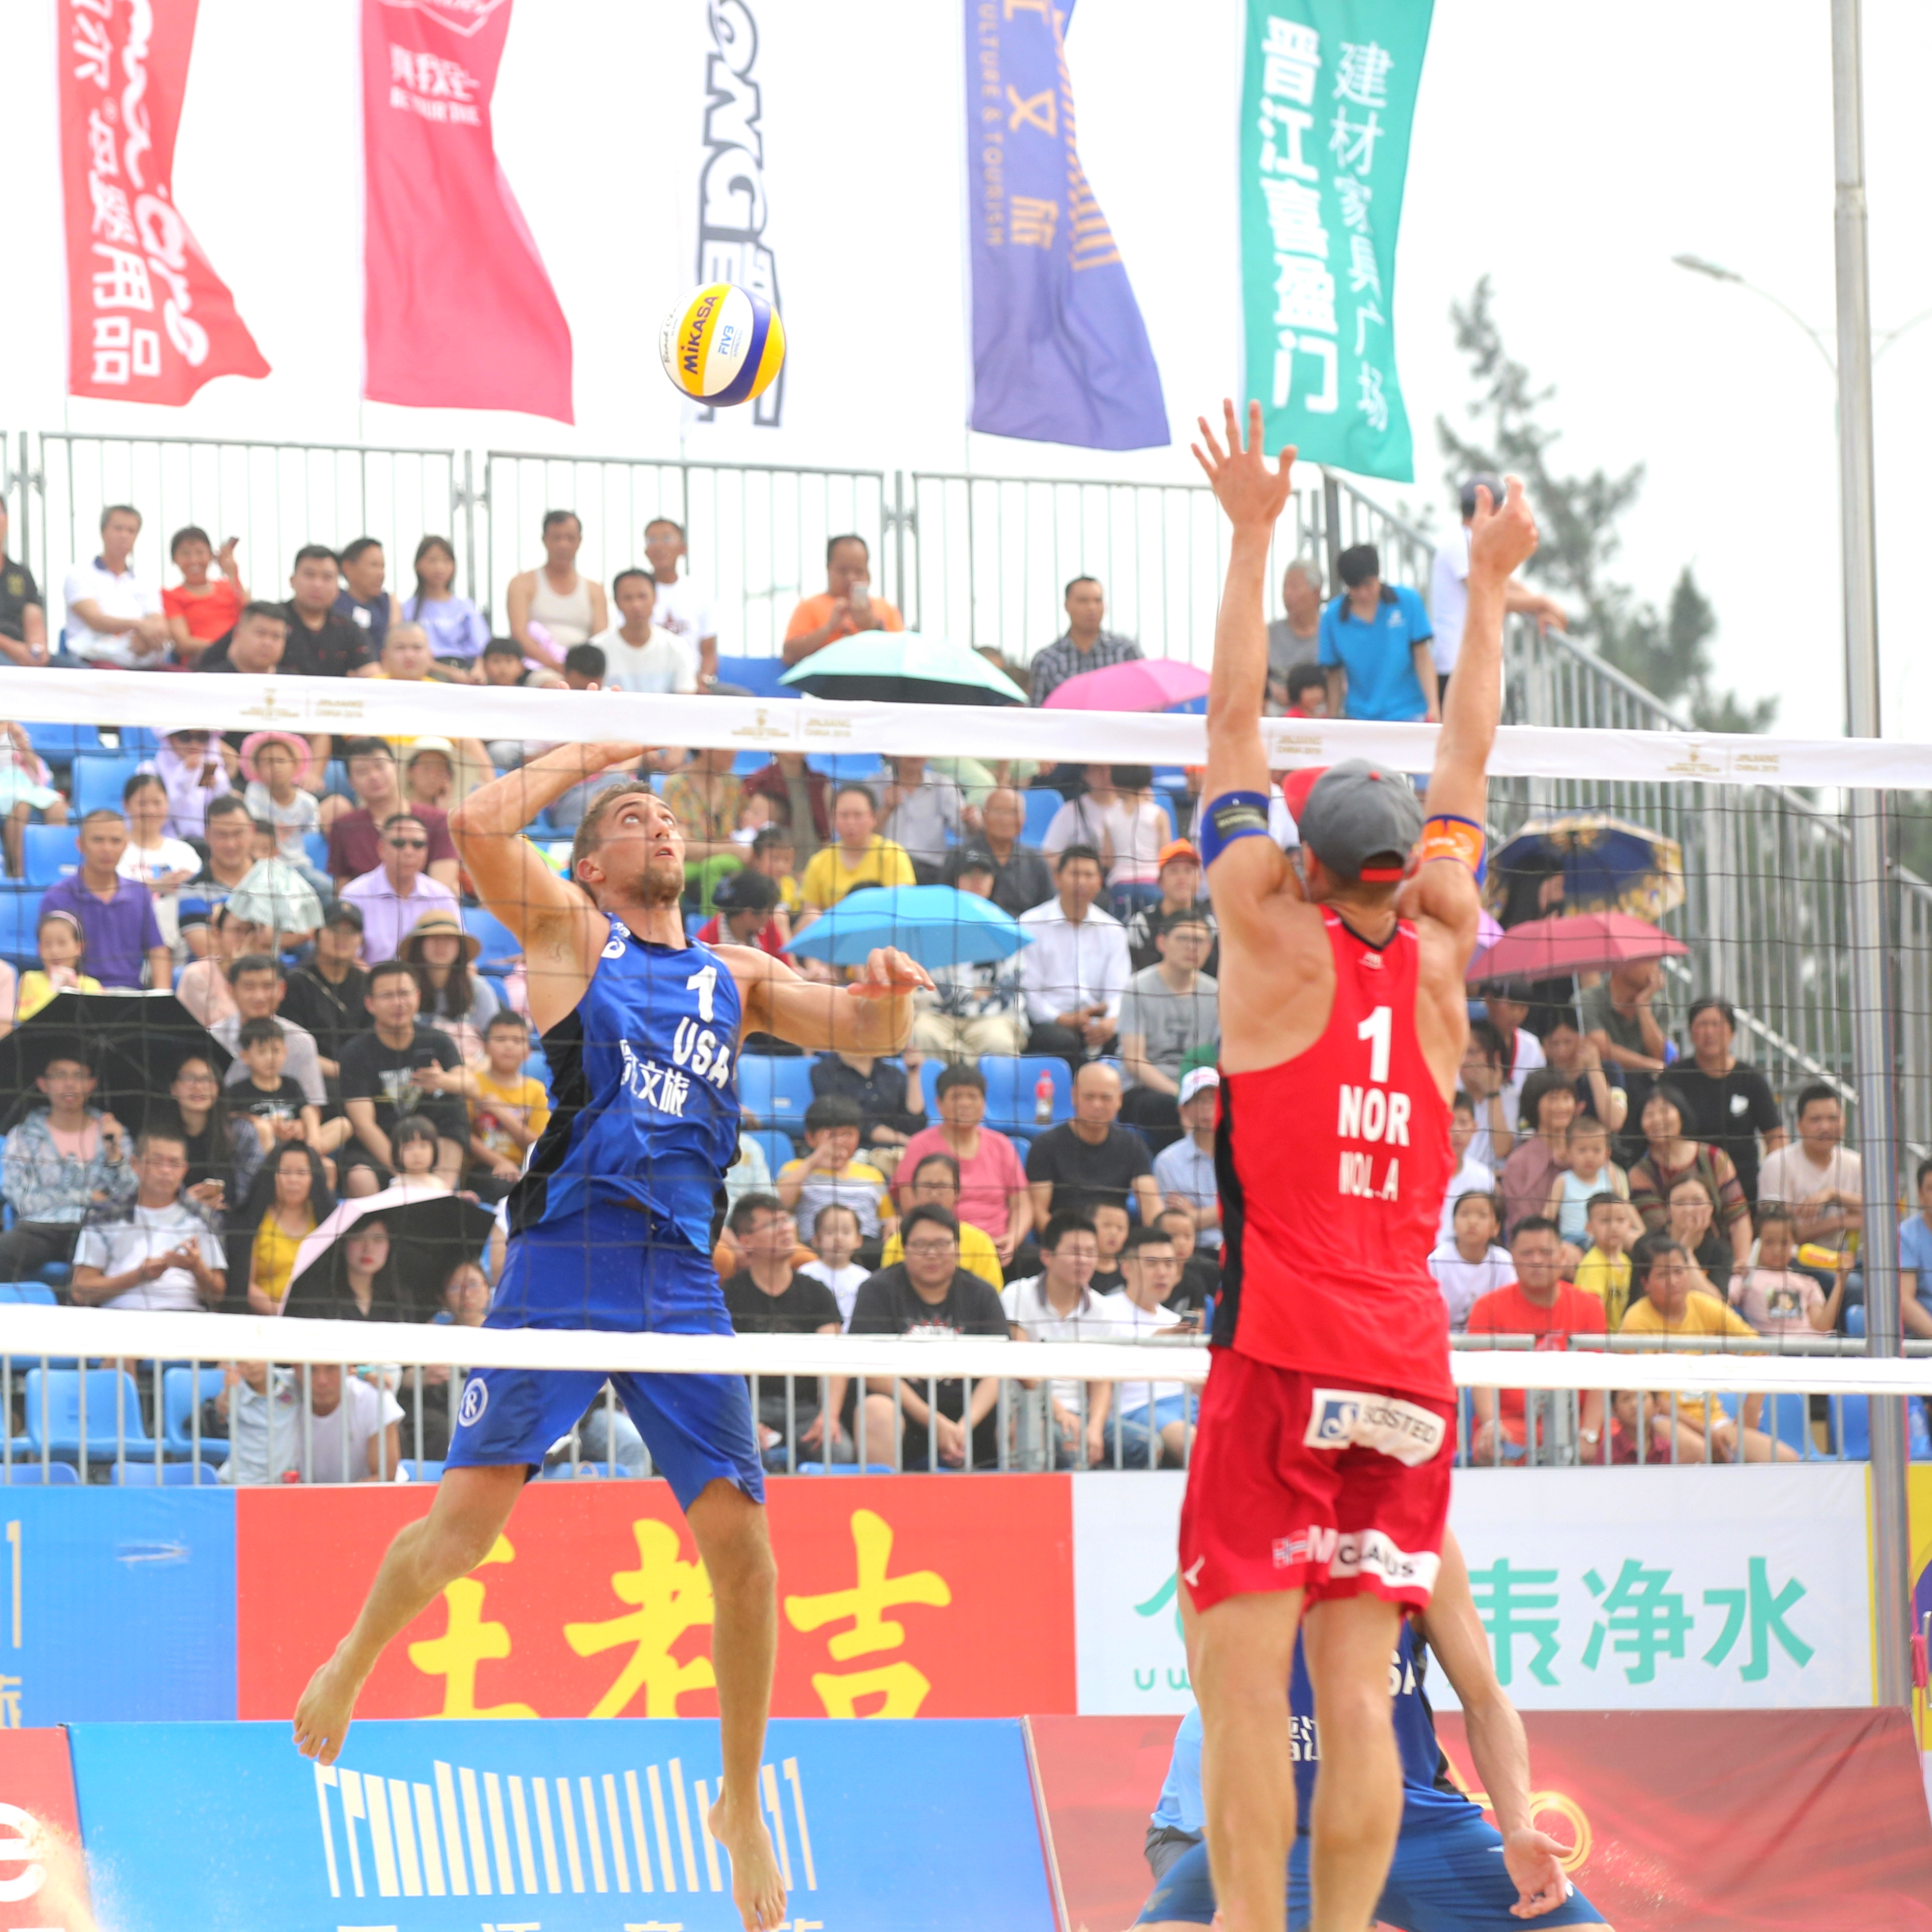 News - Jinjiang: Mol & Sørum go for double gold